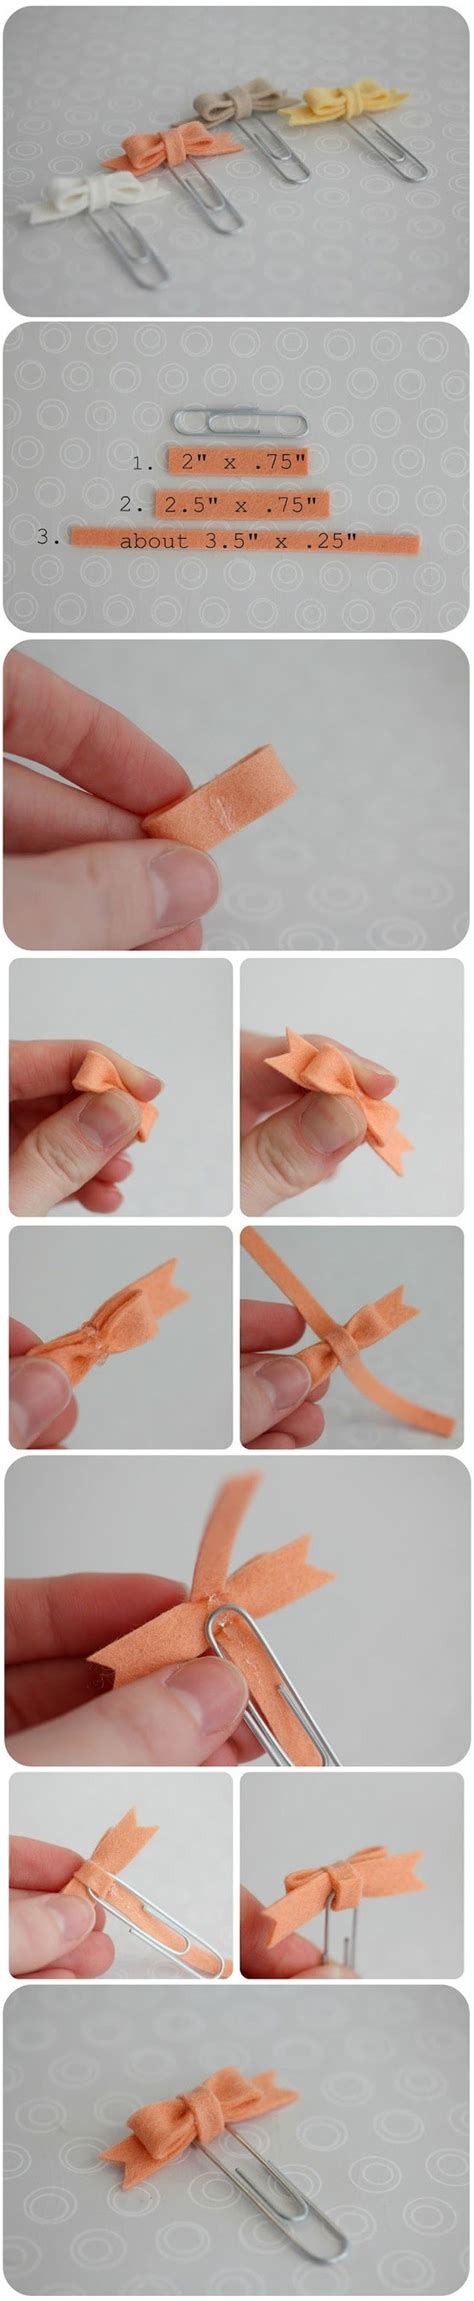 How To Make A Paper Clip Bow And Arrow - diy bow paper clip fabdiy